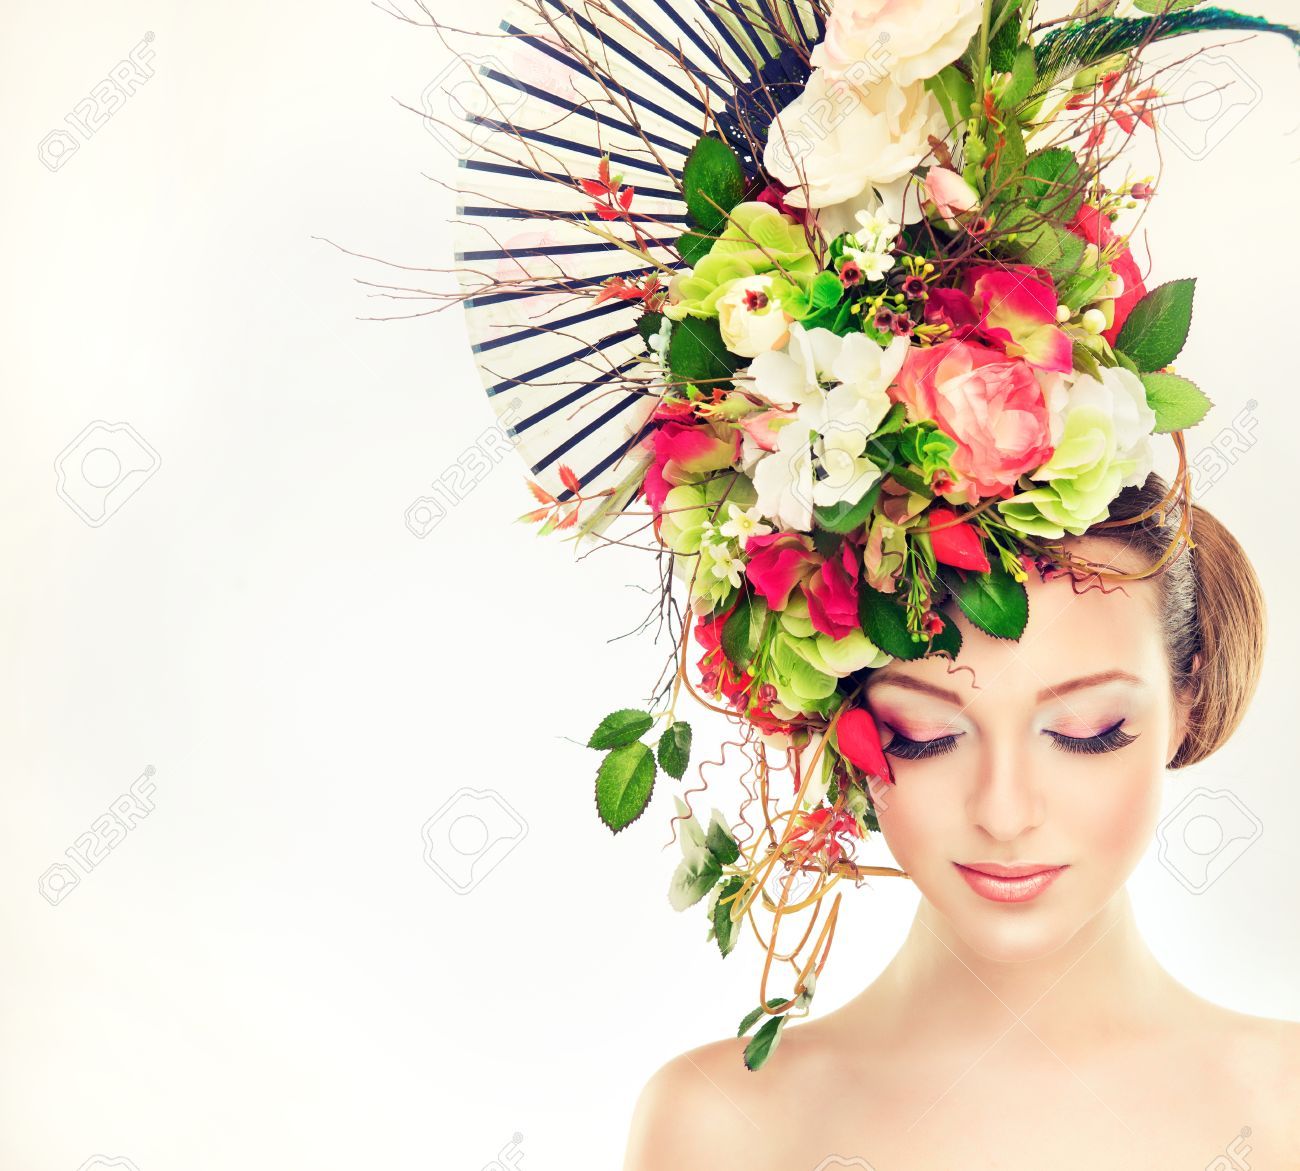 Spring freshness girl with delicate pastel flowers in hair stock spring freshness girl with delicate pastel flowers in hair stock photo 42235231 izmirmasajfo Gallery